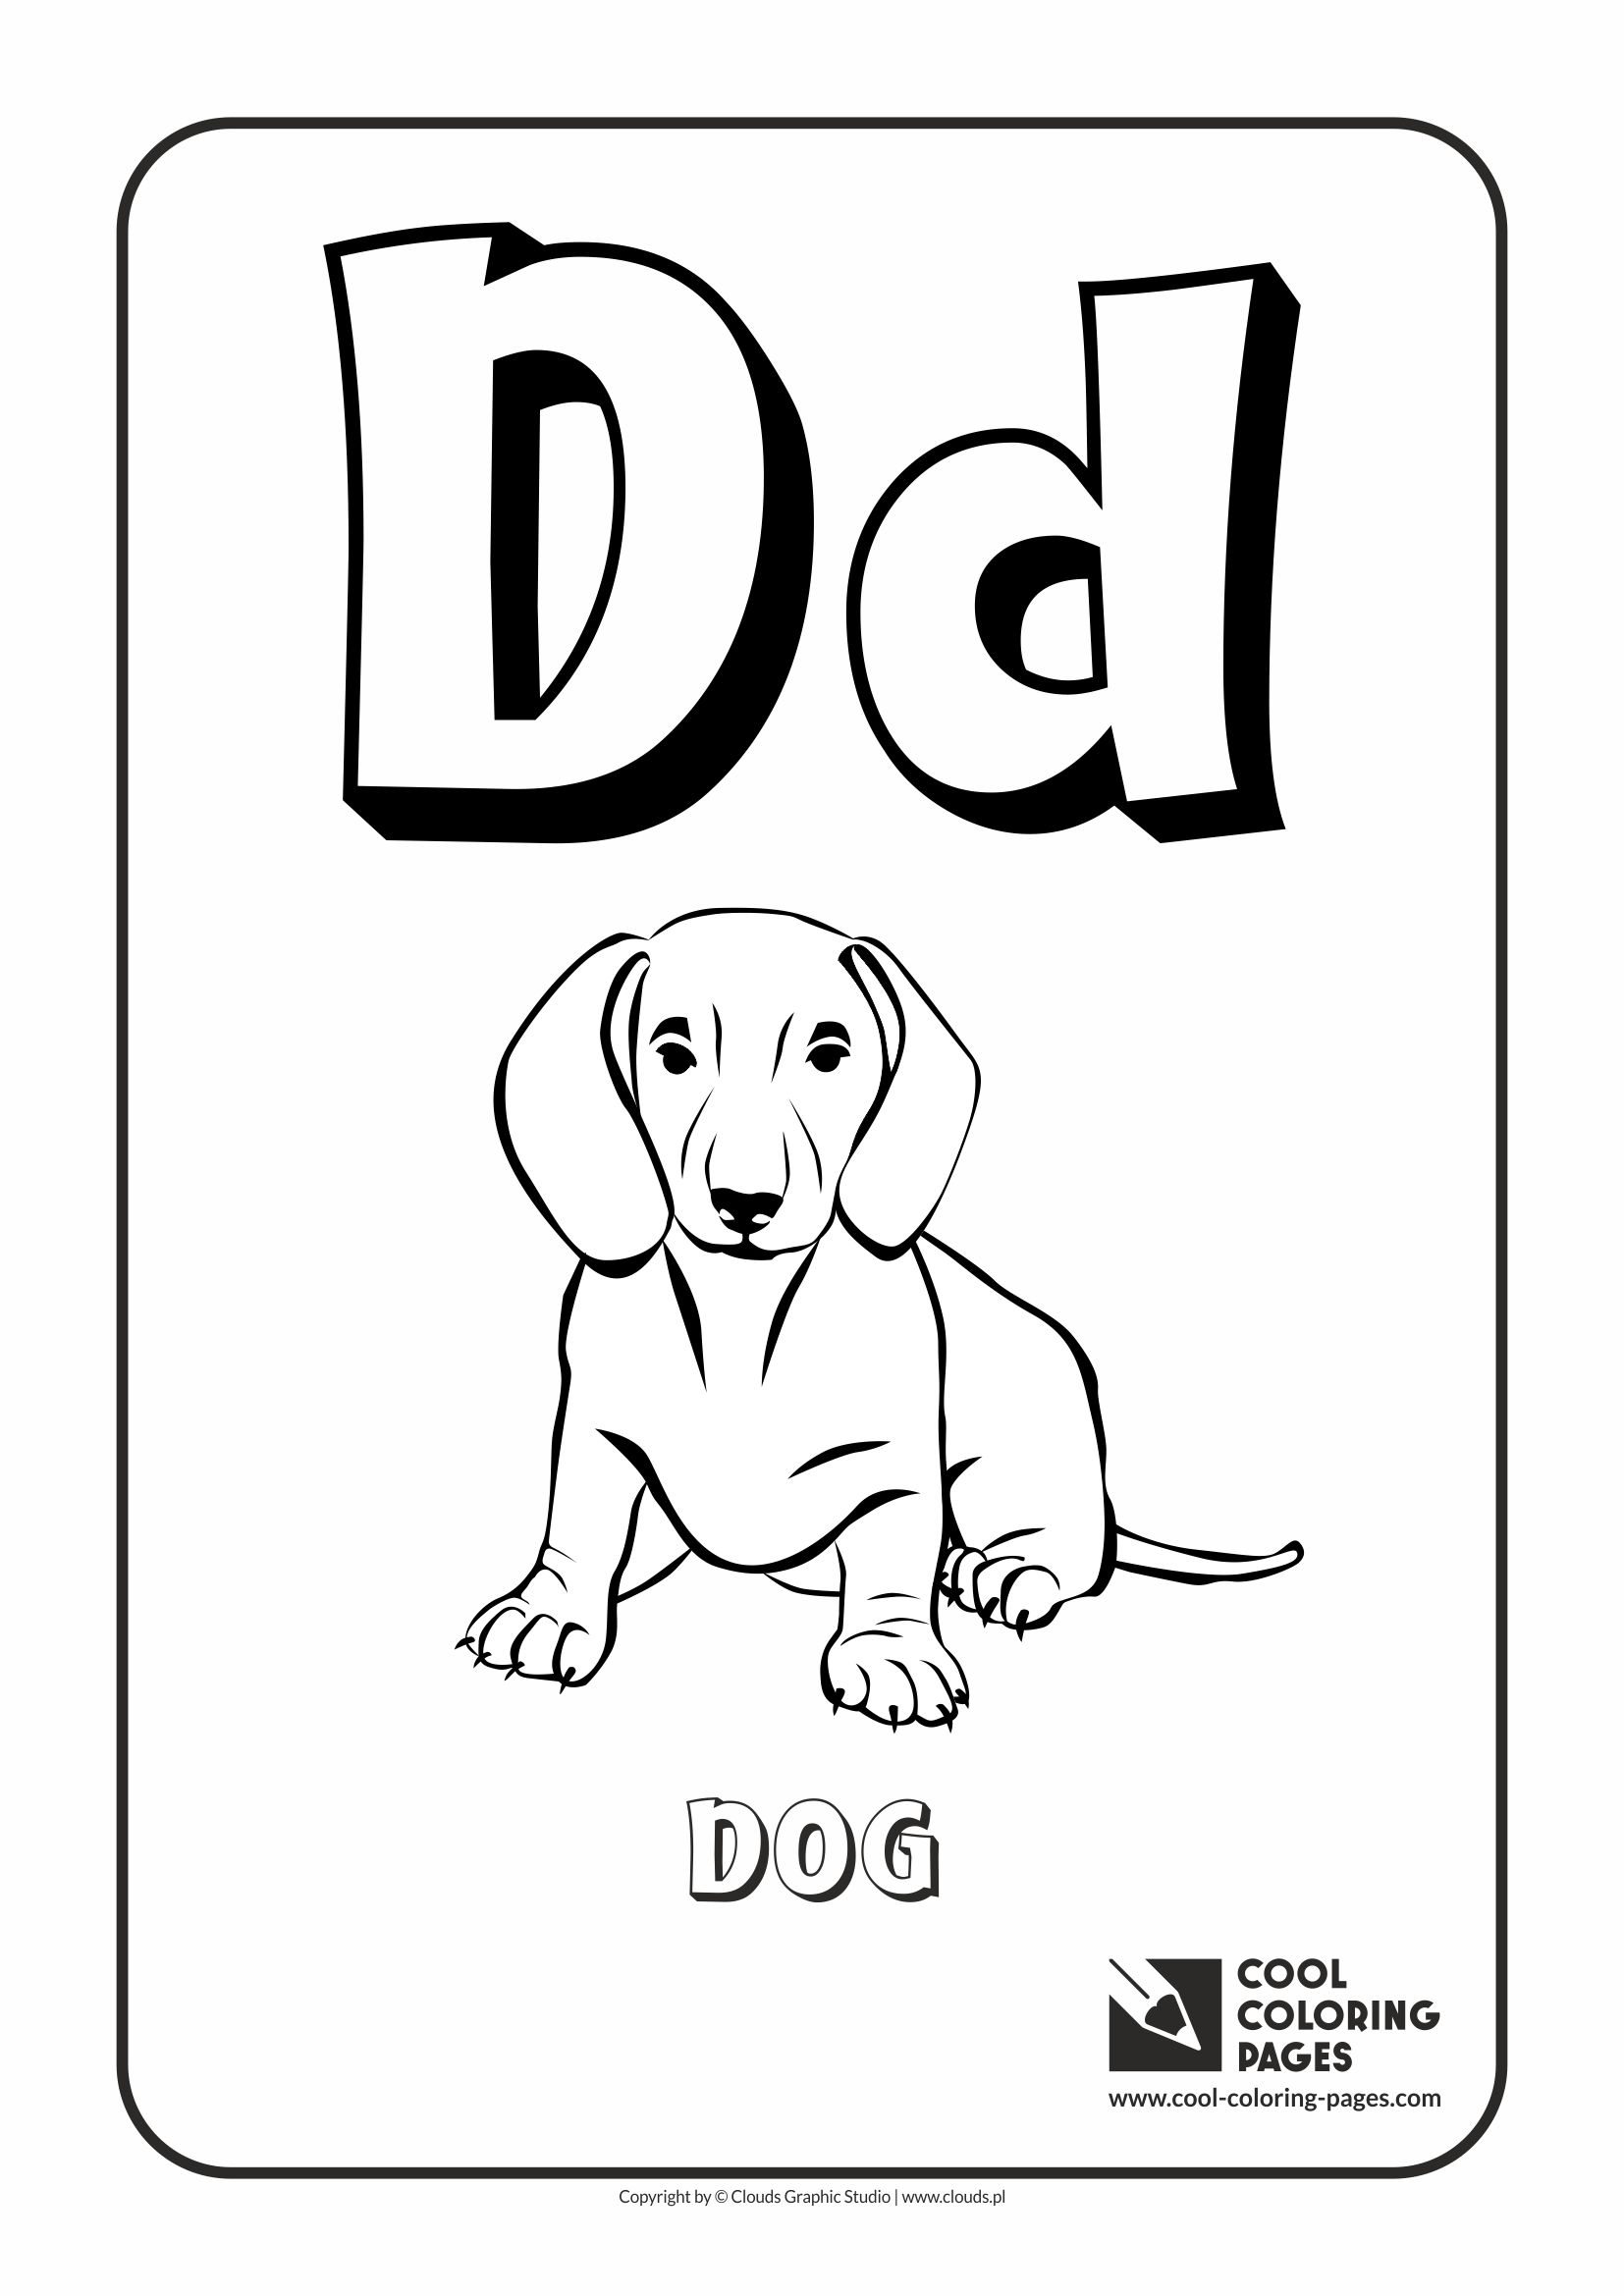 Cool Coloring Pages Alphabet Coloring Pages